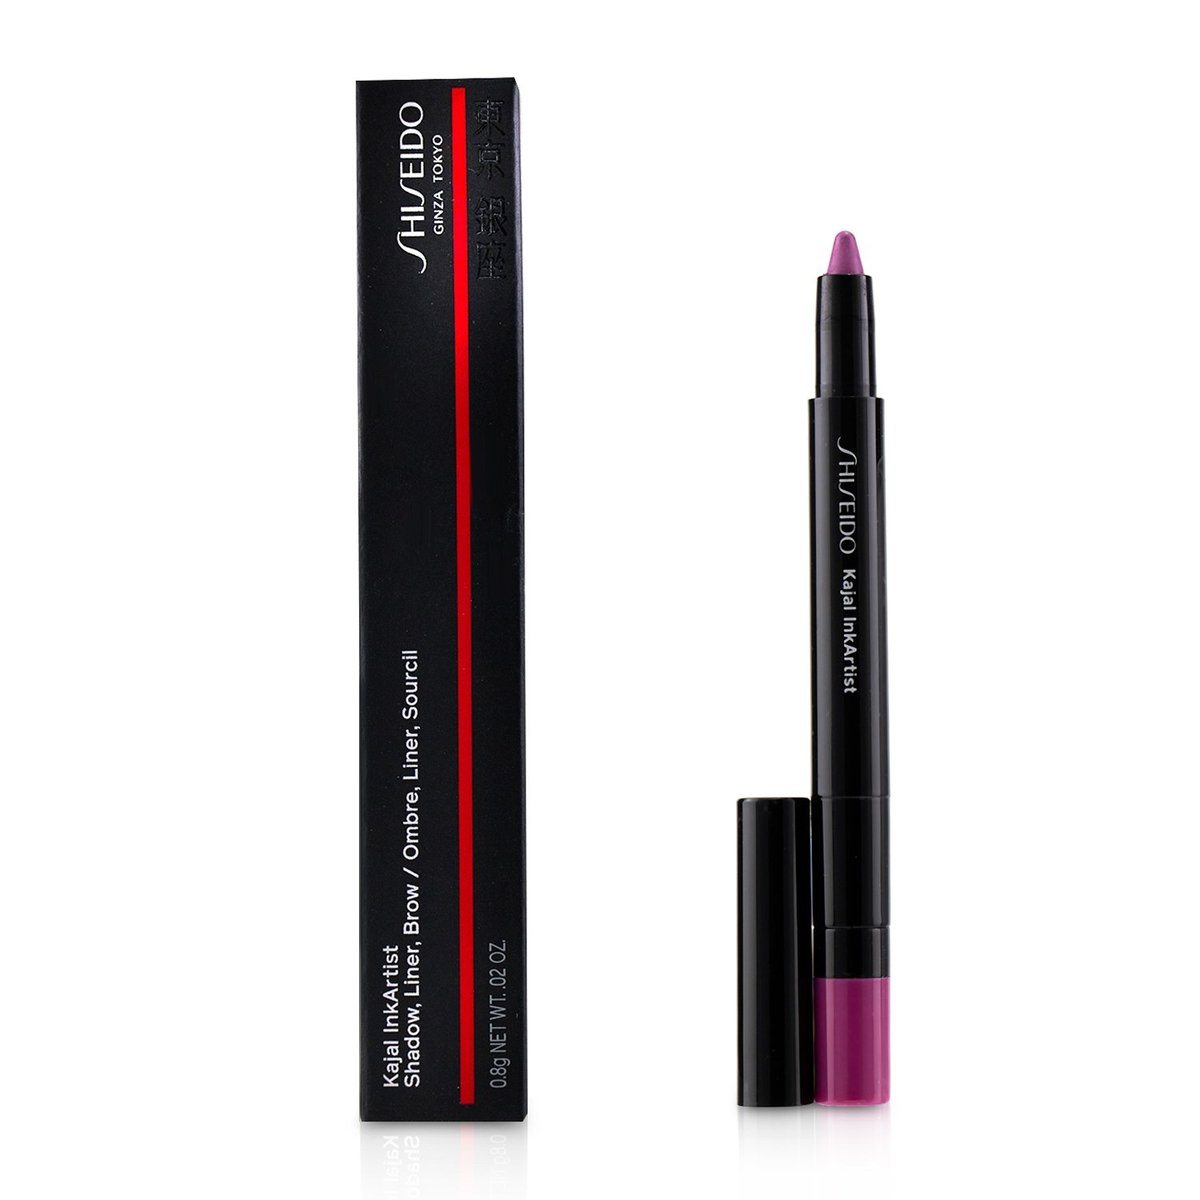 Kajal InkArtist (Shadow, Liner, Brow) - # 02 Lilac Lotus (Pink)  -[Parallel Import Product]